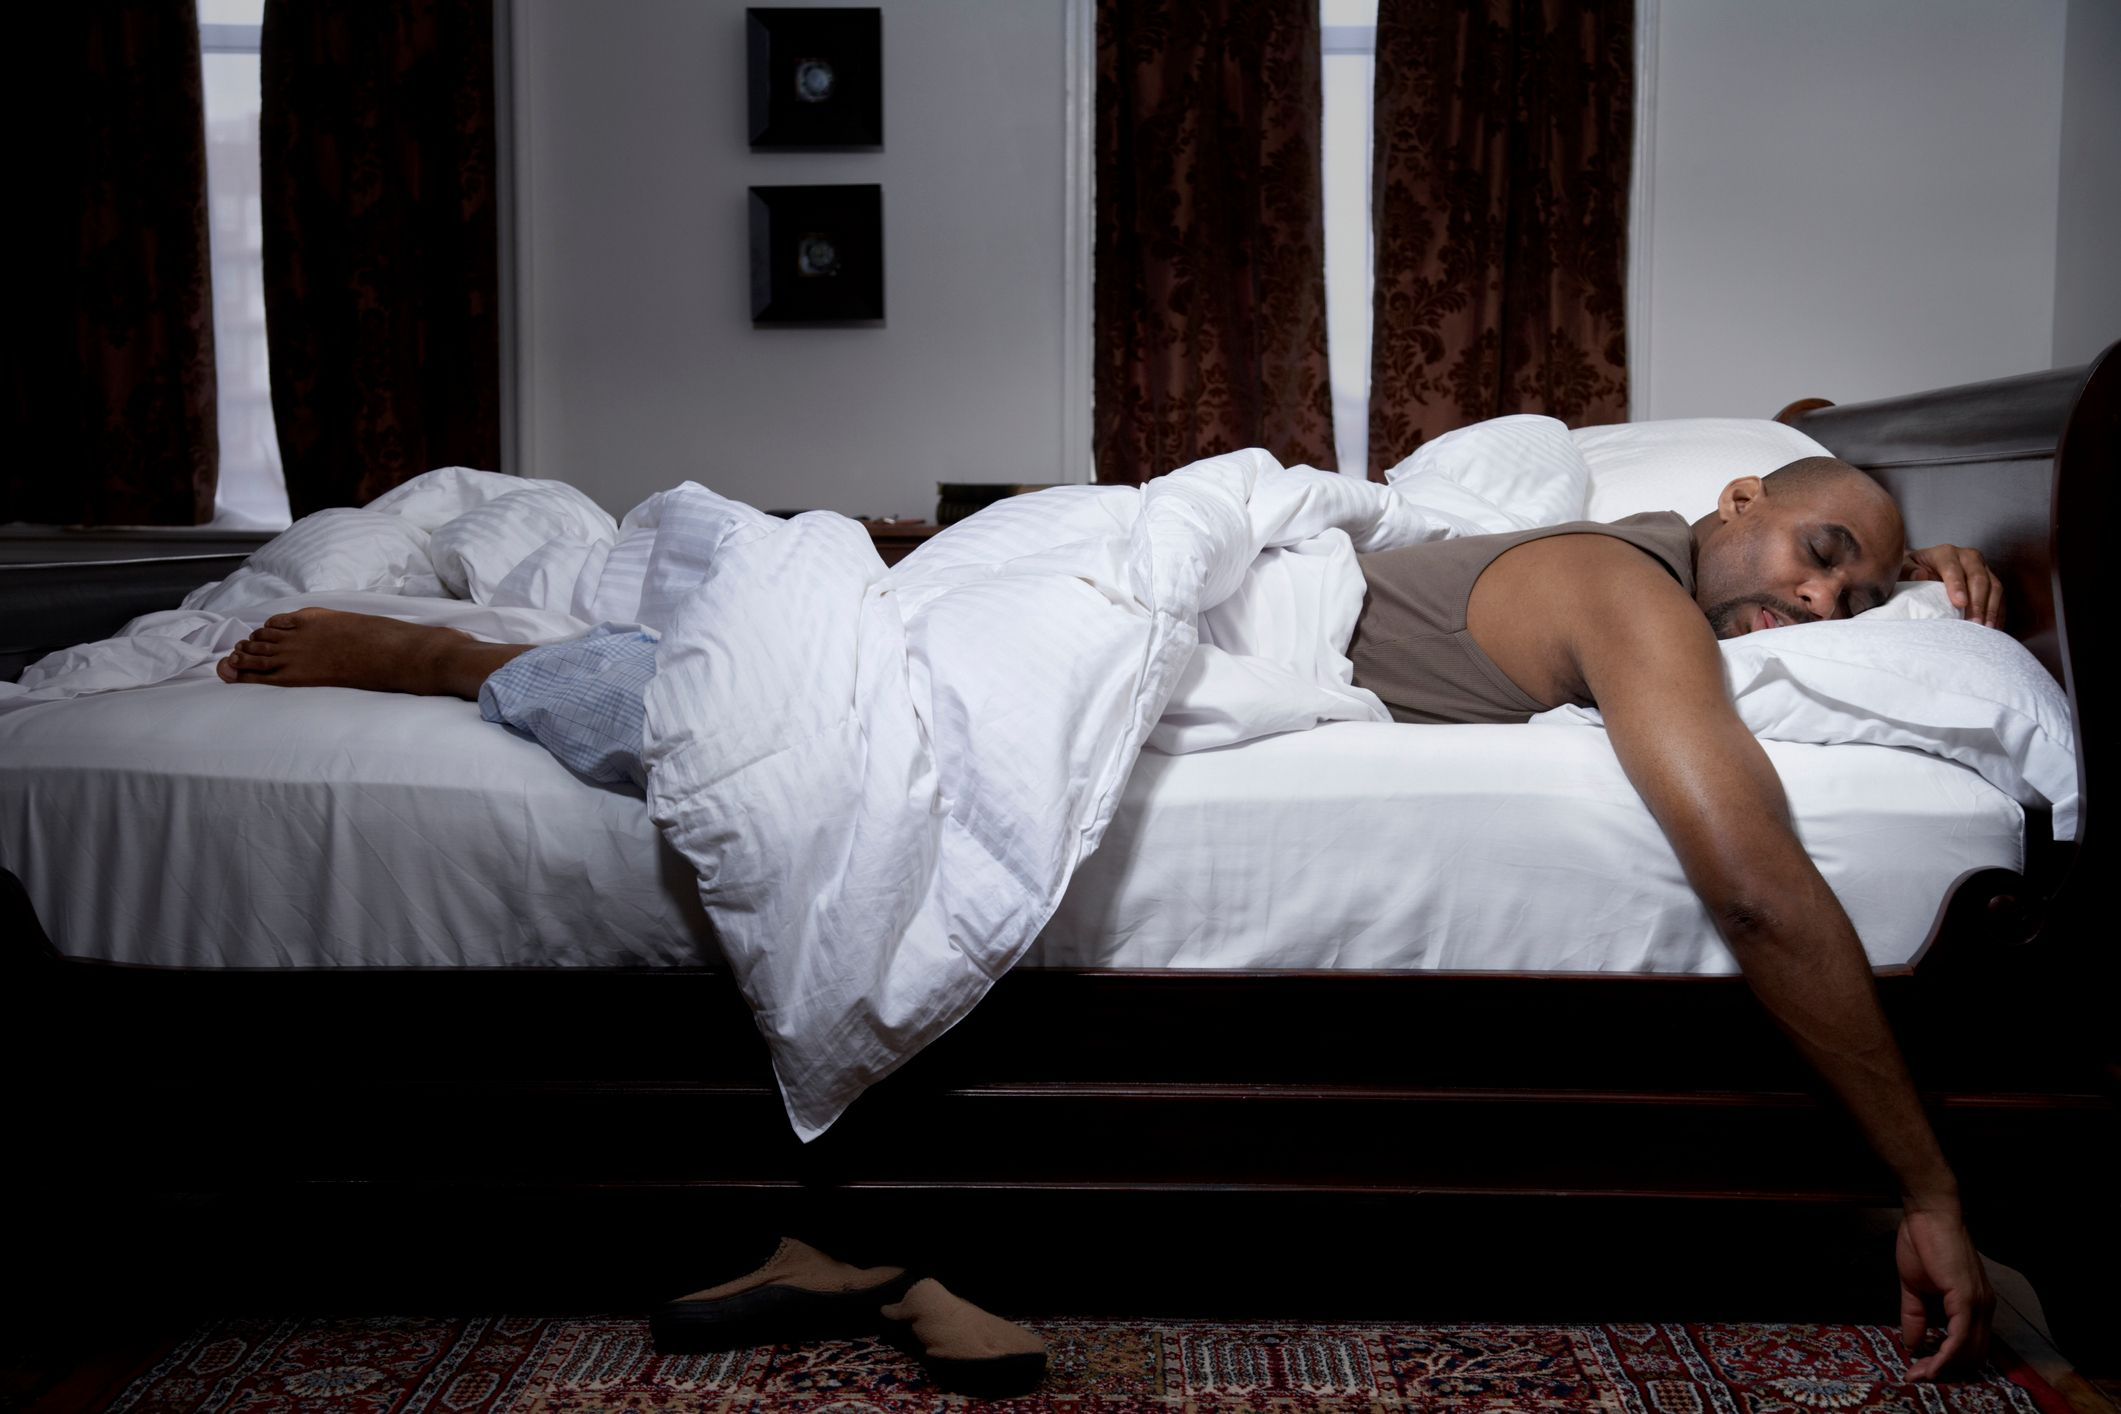 A man sleeping on his bed.   Source: Shutterstock